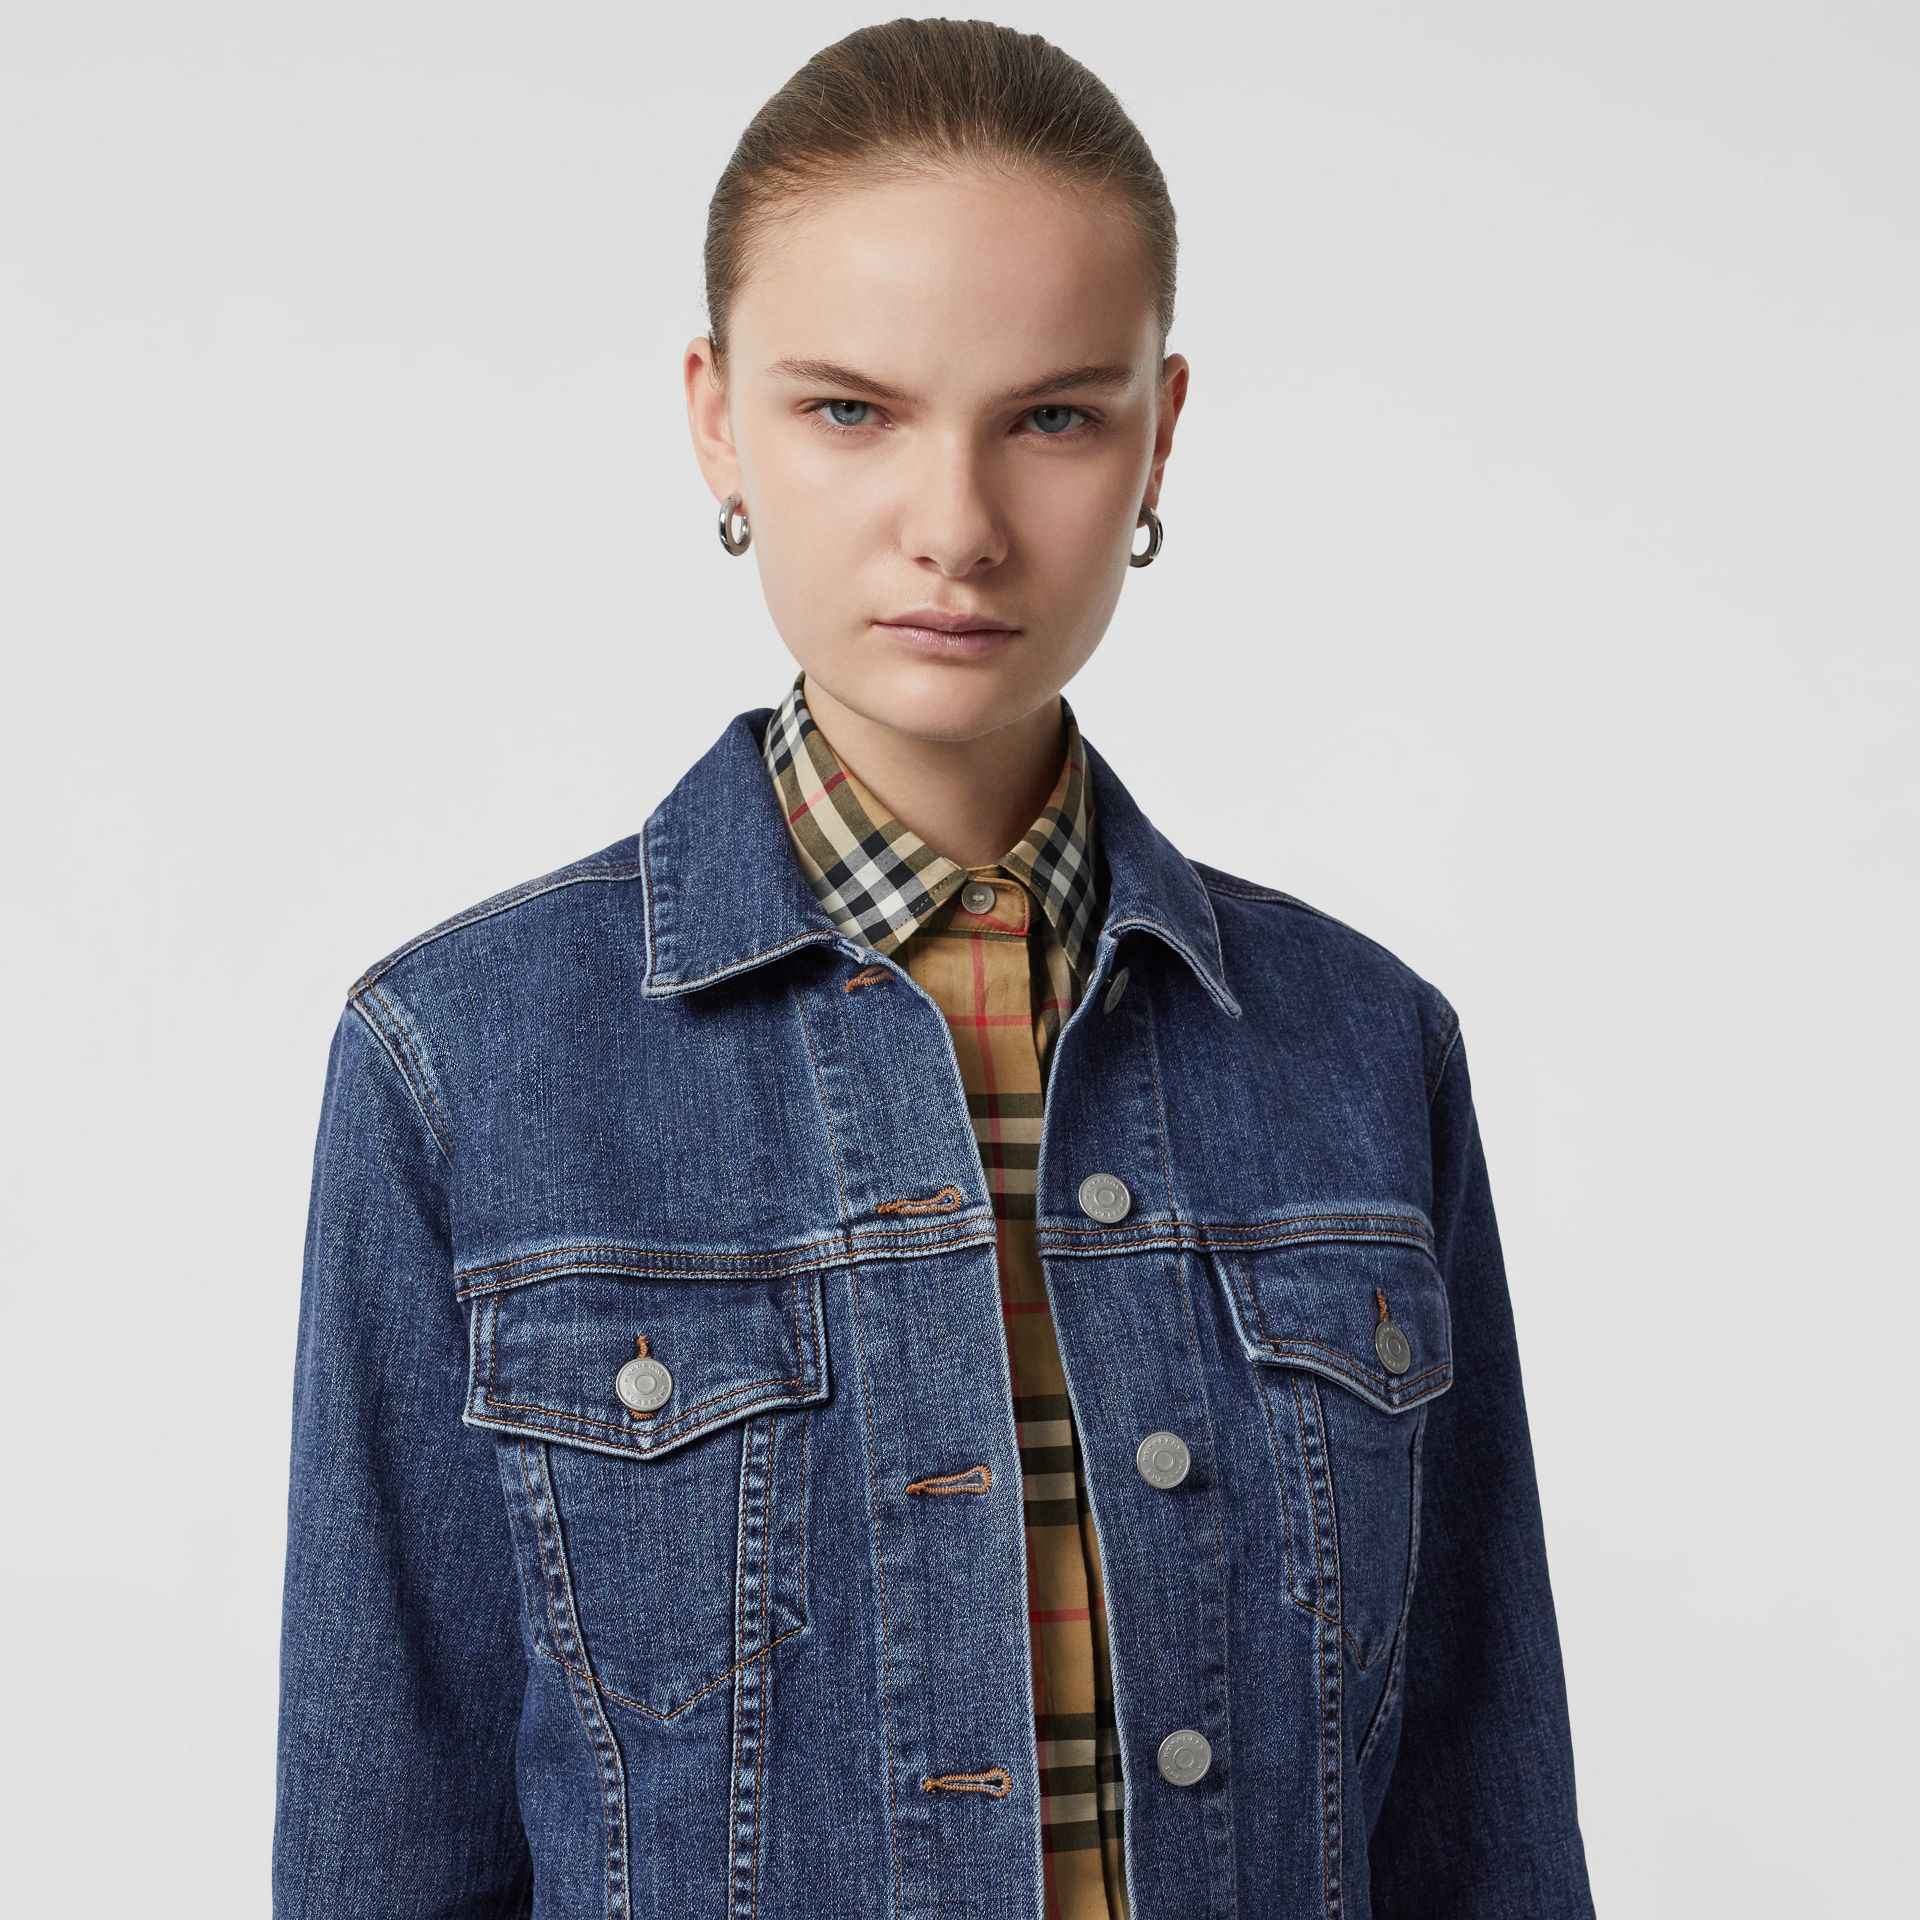 Veste en denim avec écusson brodé (Bleu) - Femme | Burberry - photo de la galerie 4